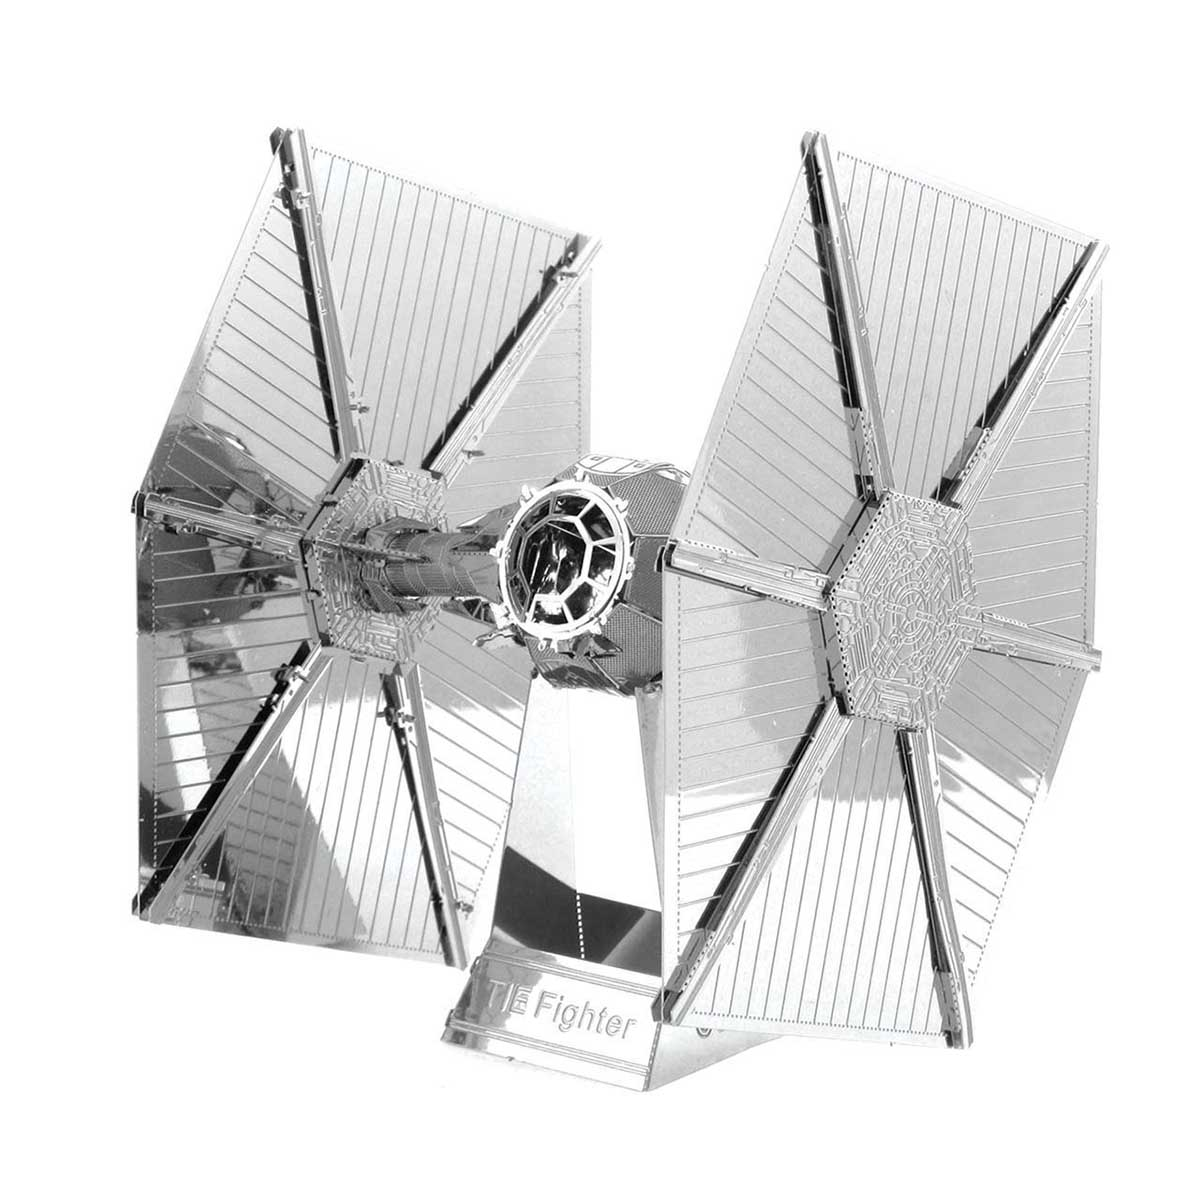 TIE Fighter Space Metal Puzzles